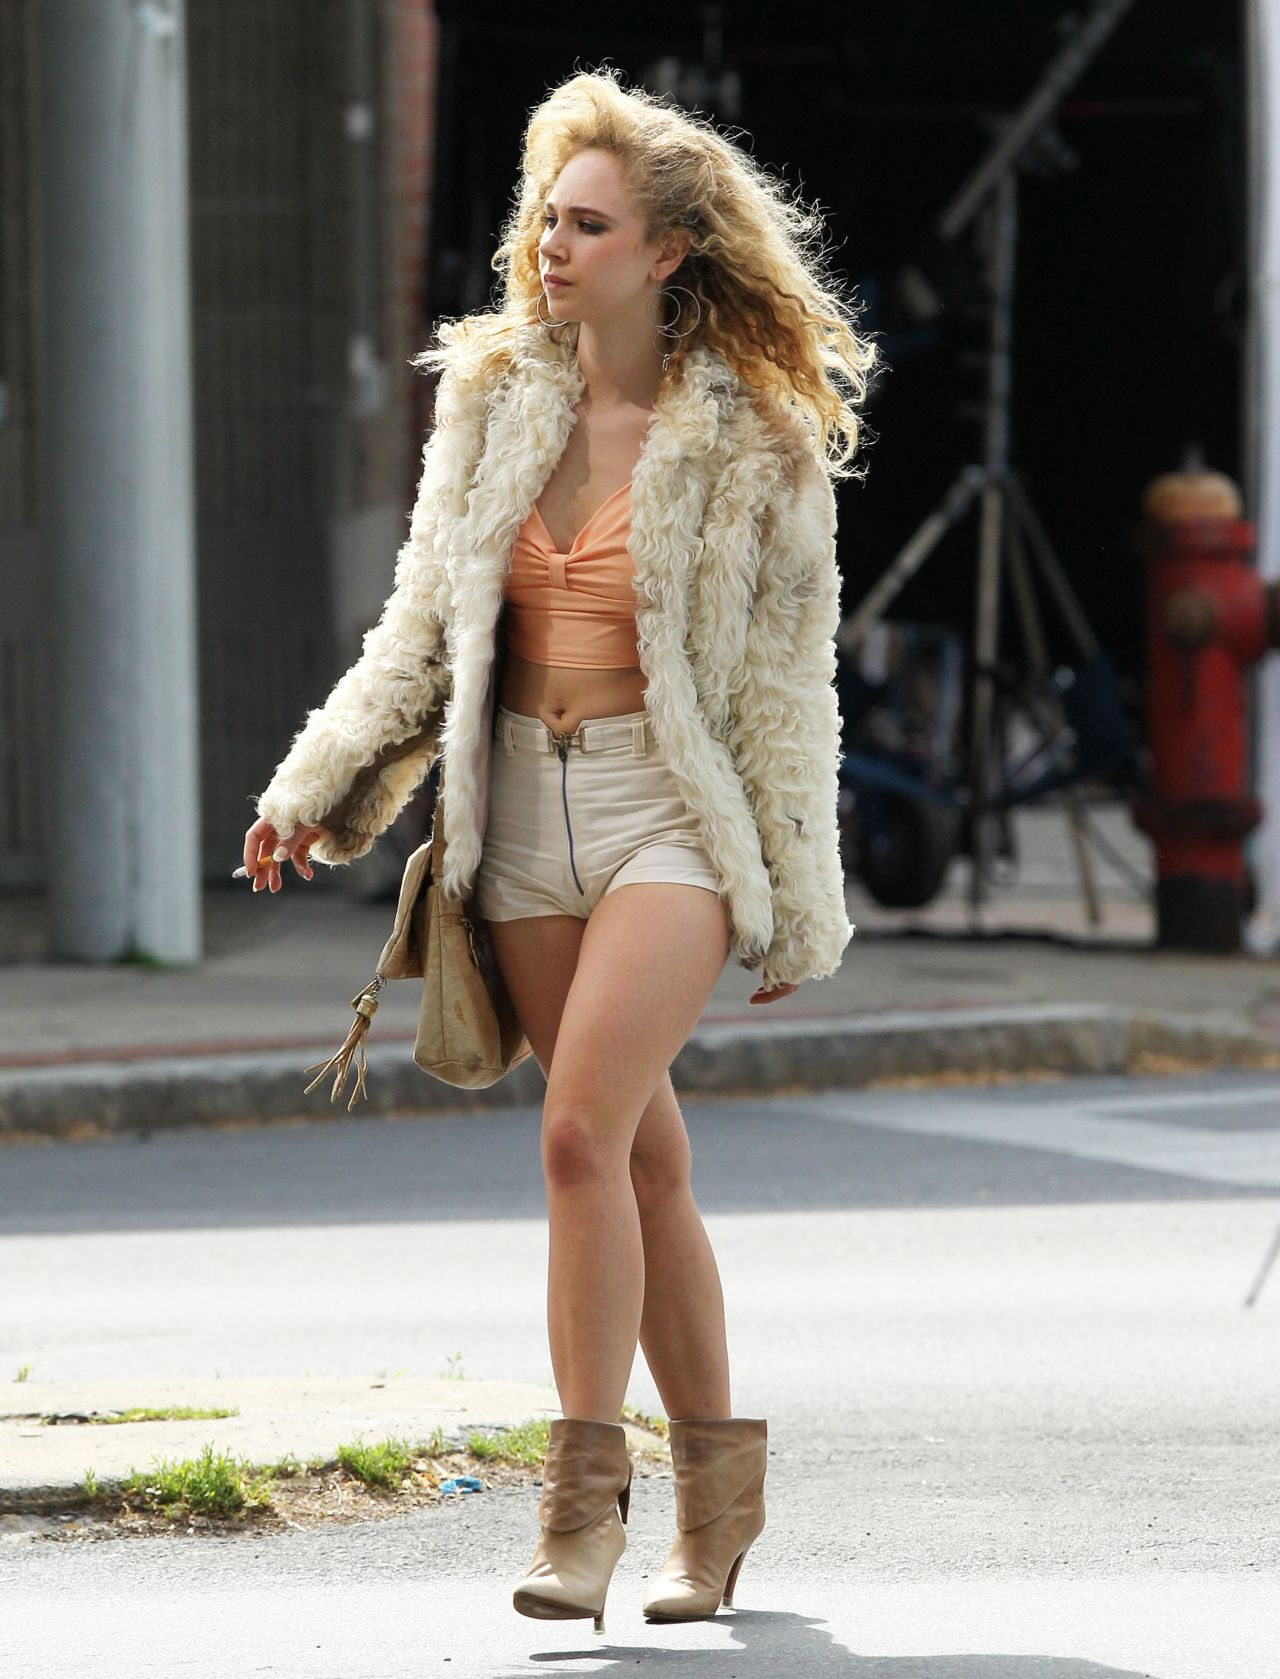 image Juno temple full frontal nudity